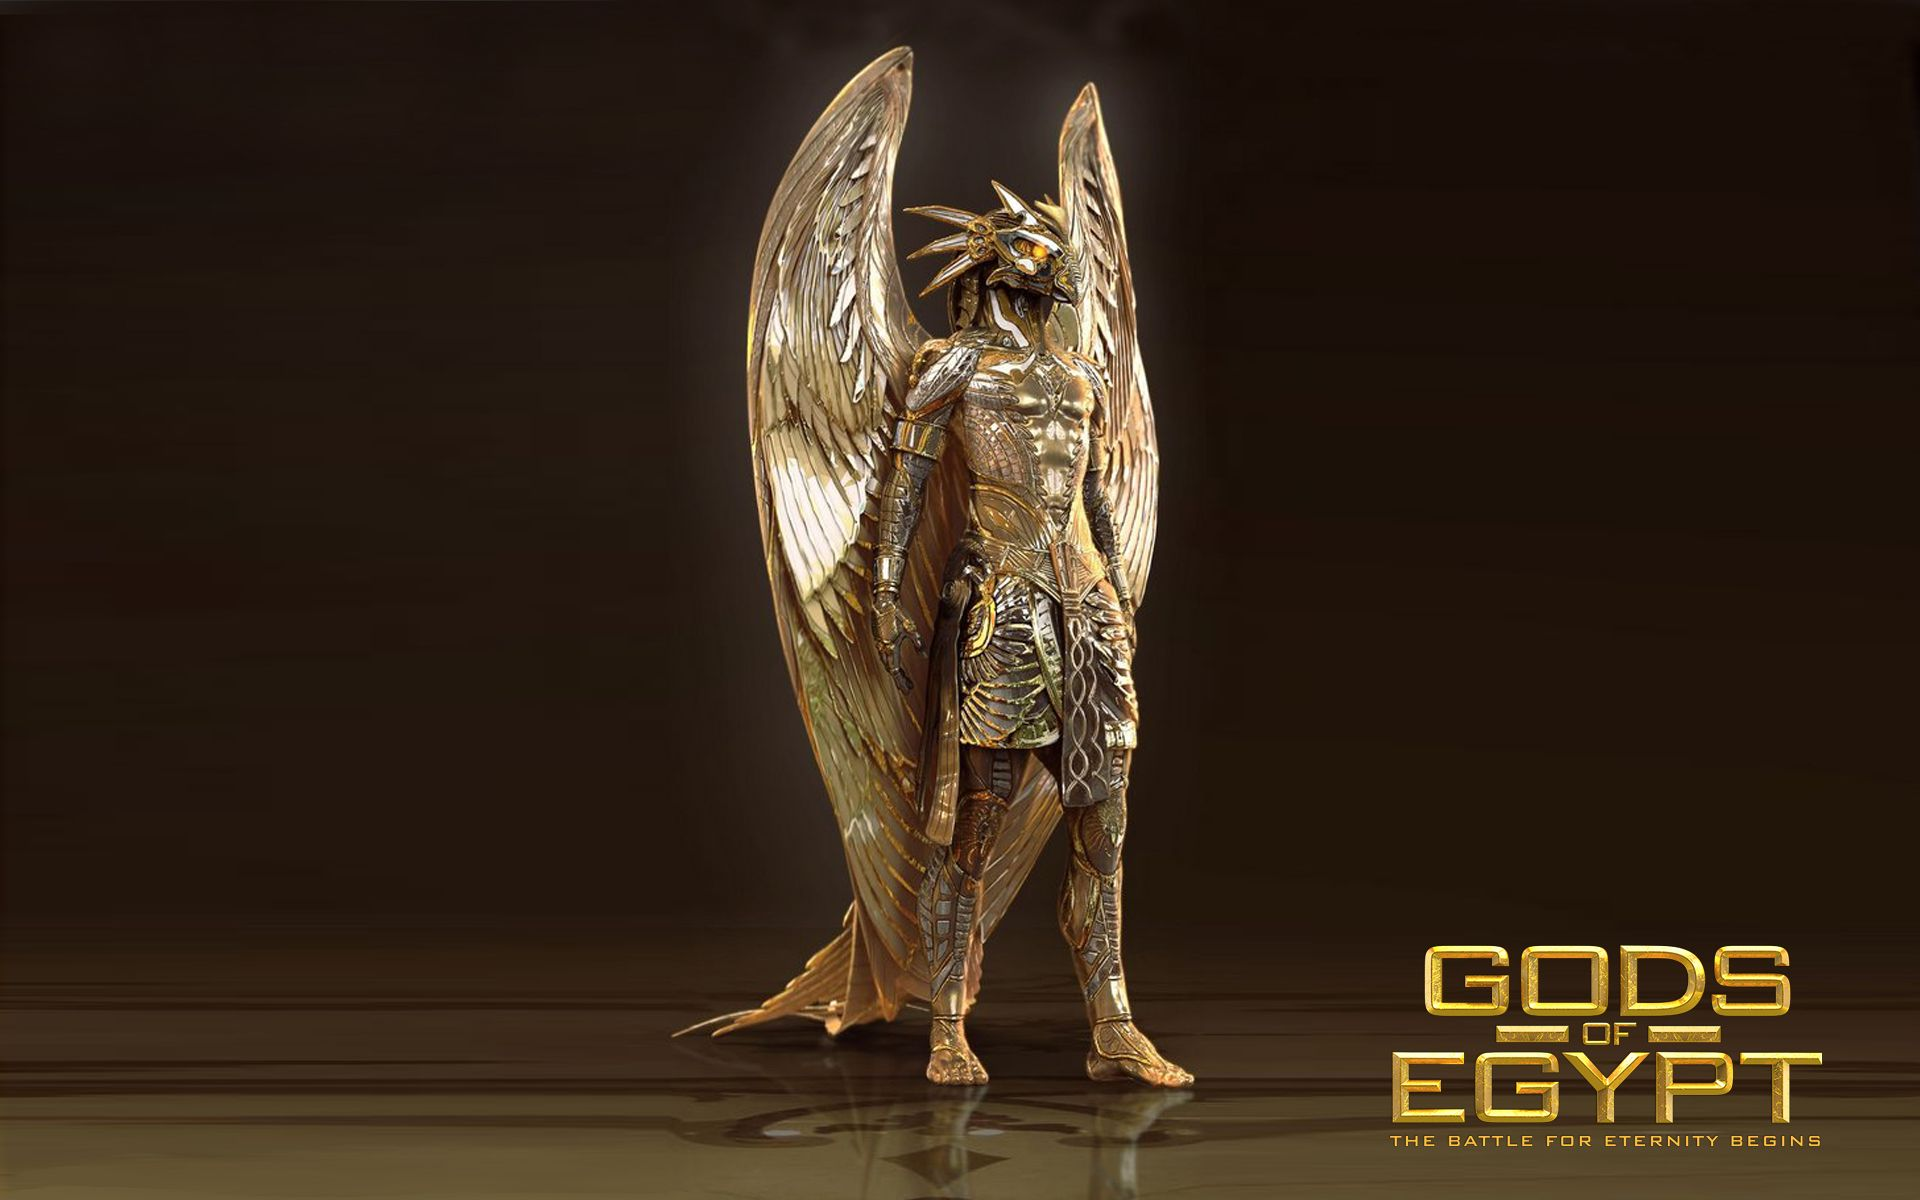 Gods of Egypt Wallpapers - Top Free Gods of Egypt